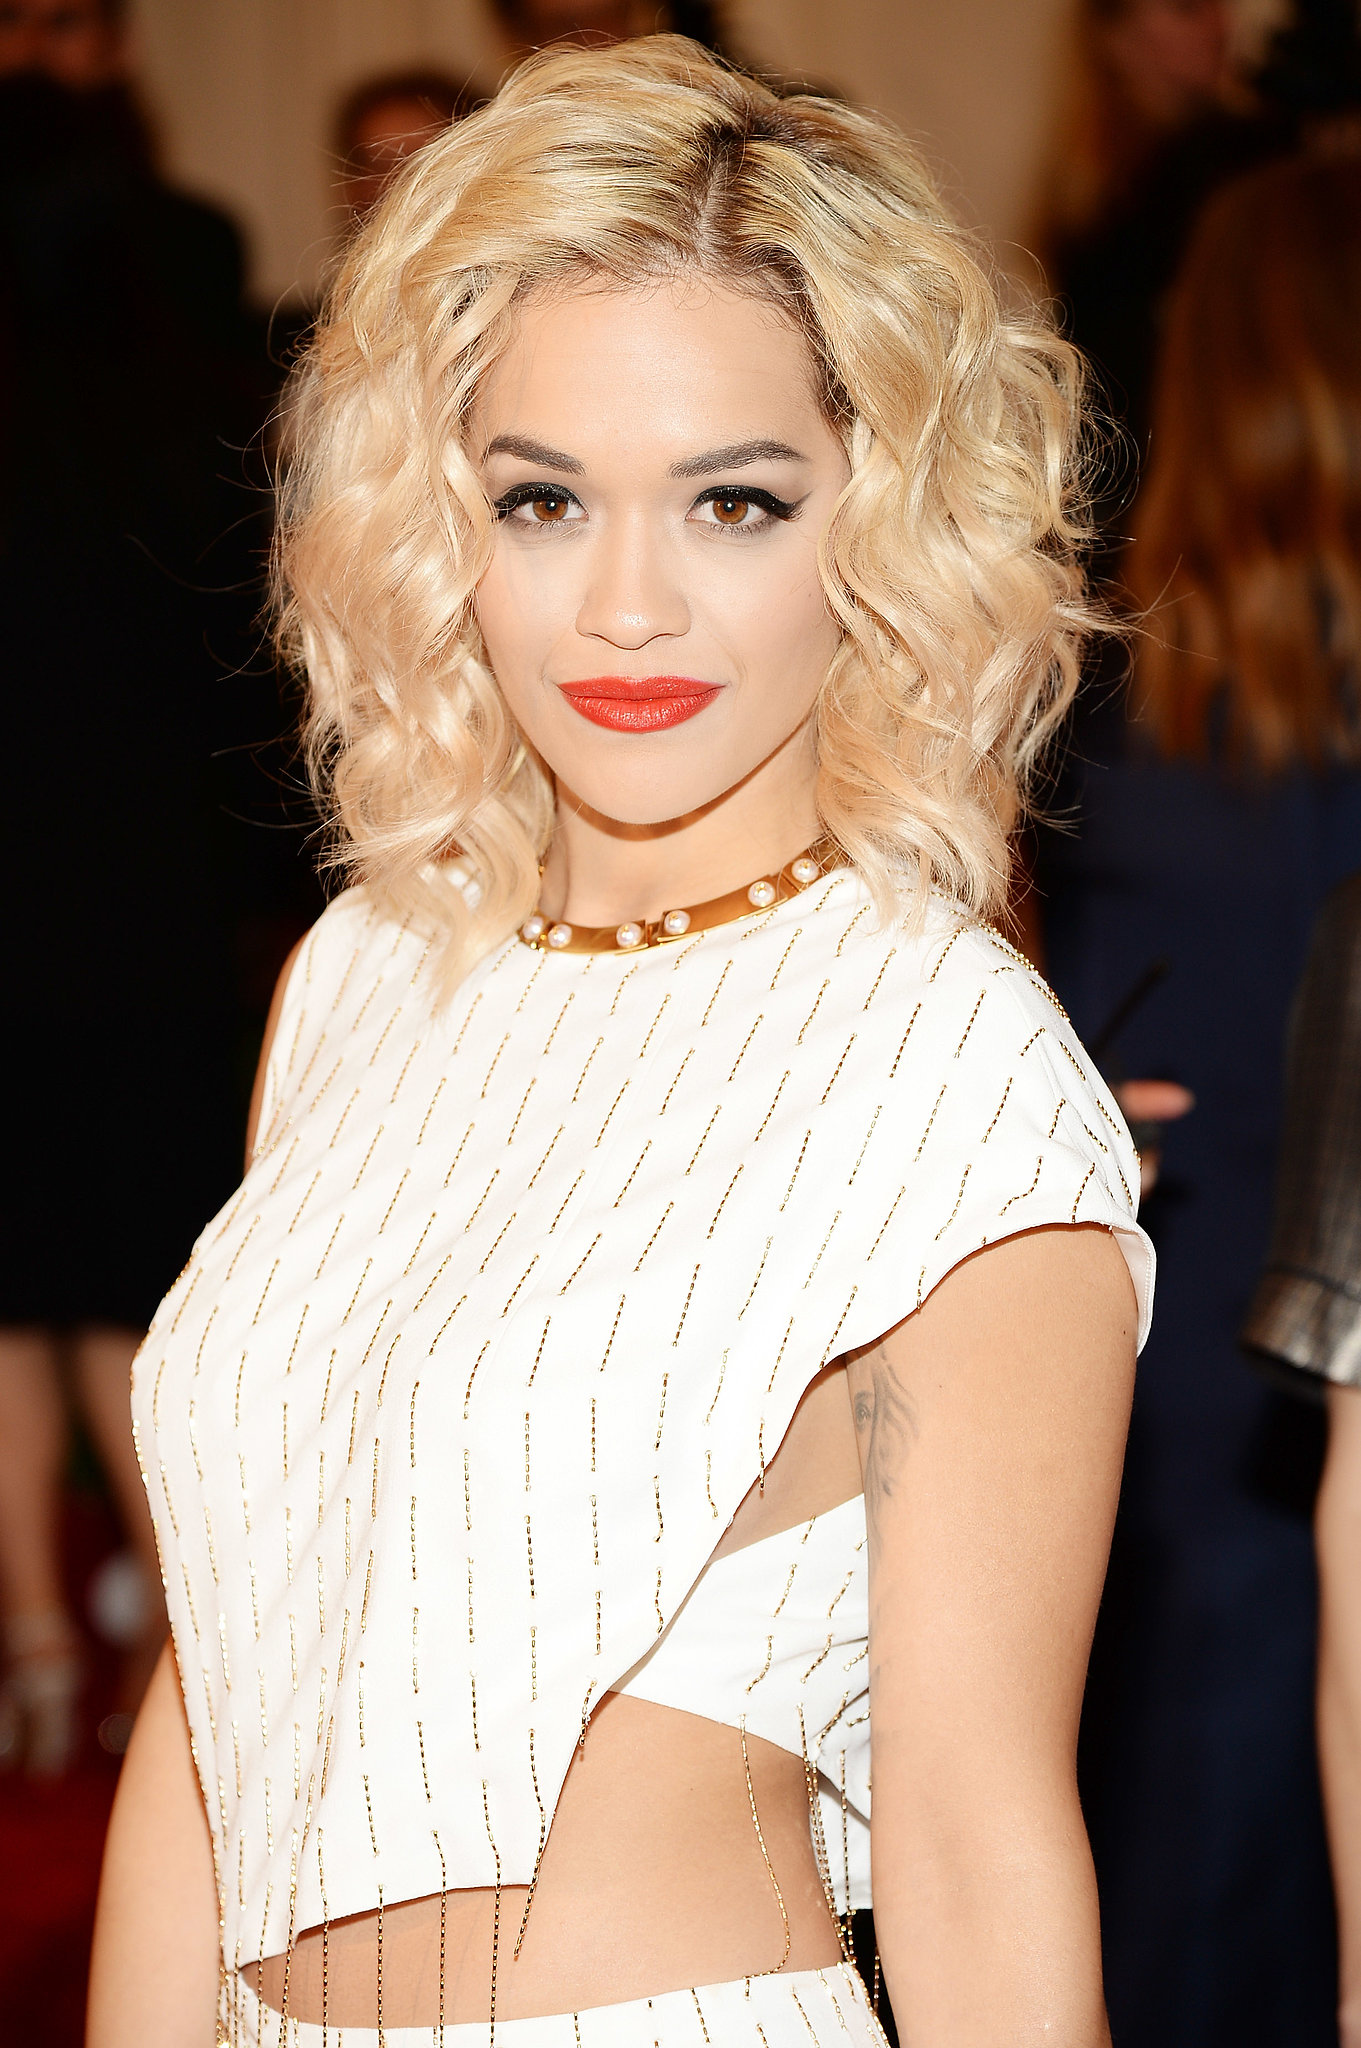 Rita Ora's short hair looked adorable styled in some beachy waves.